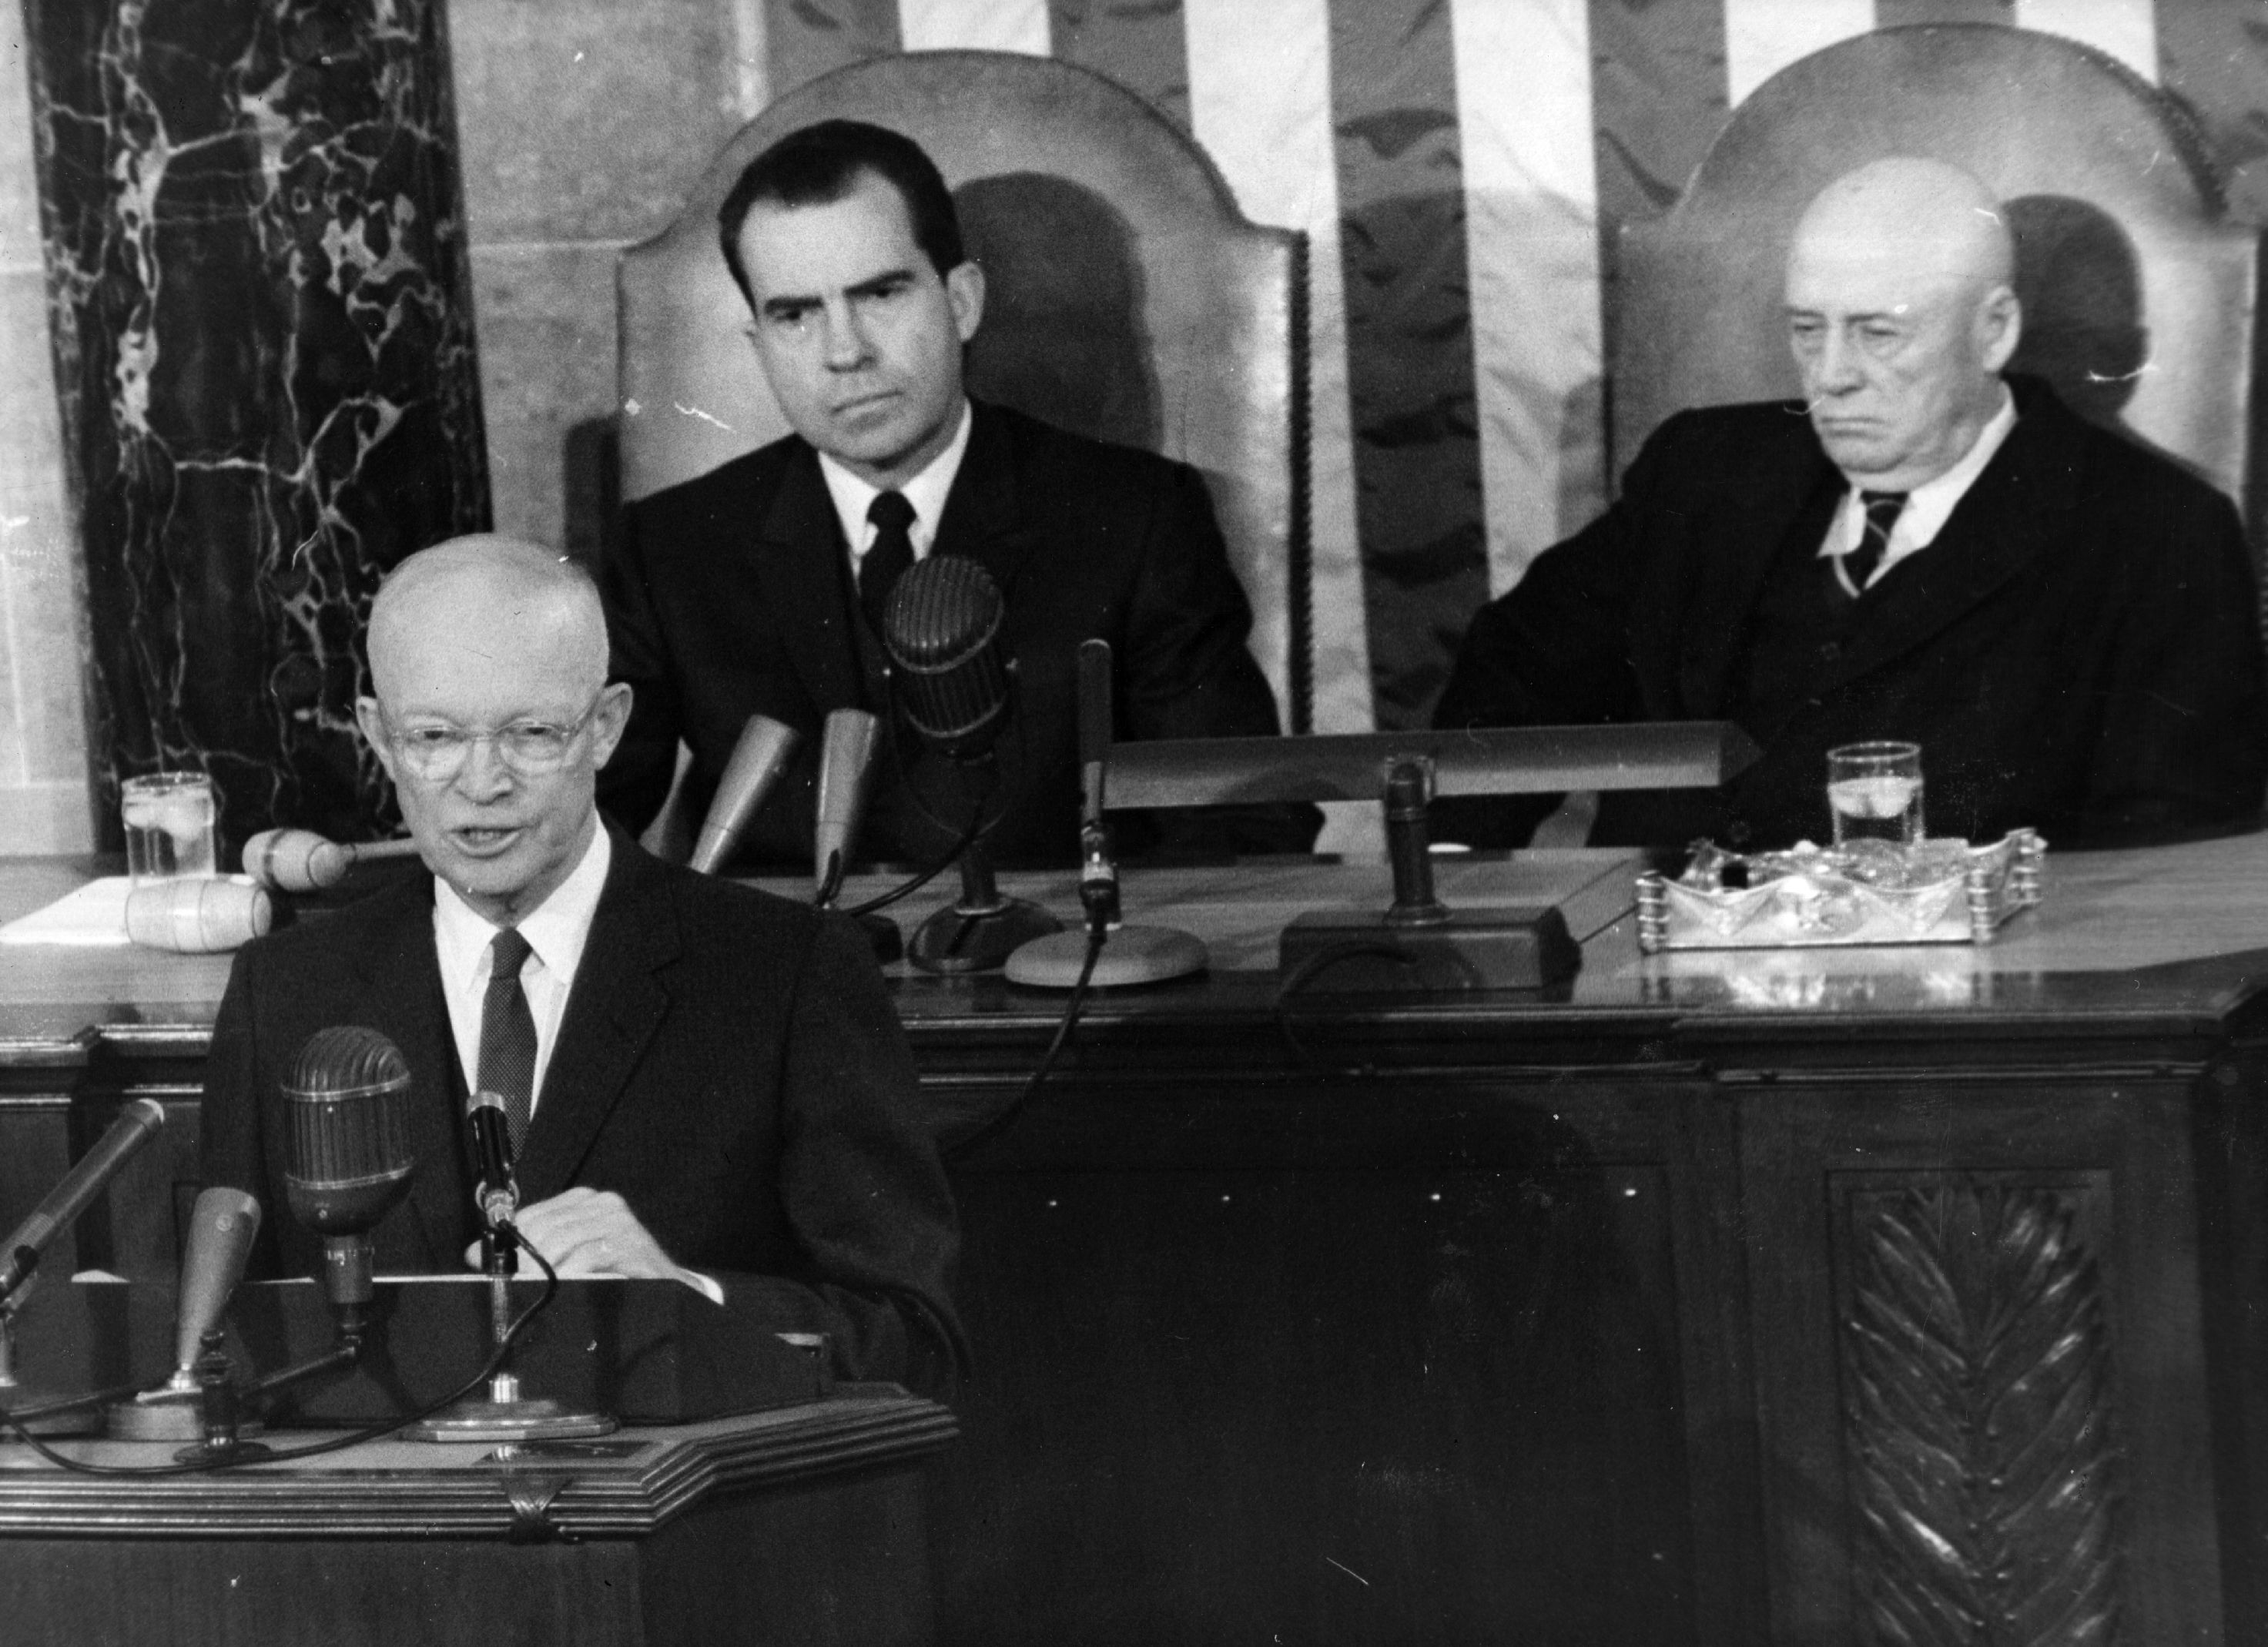 Dwight D Eisenhower's State of the Union with Richard Nixon in the background